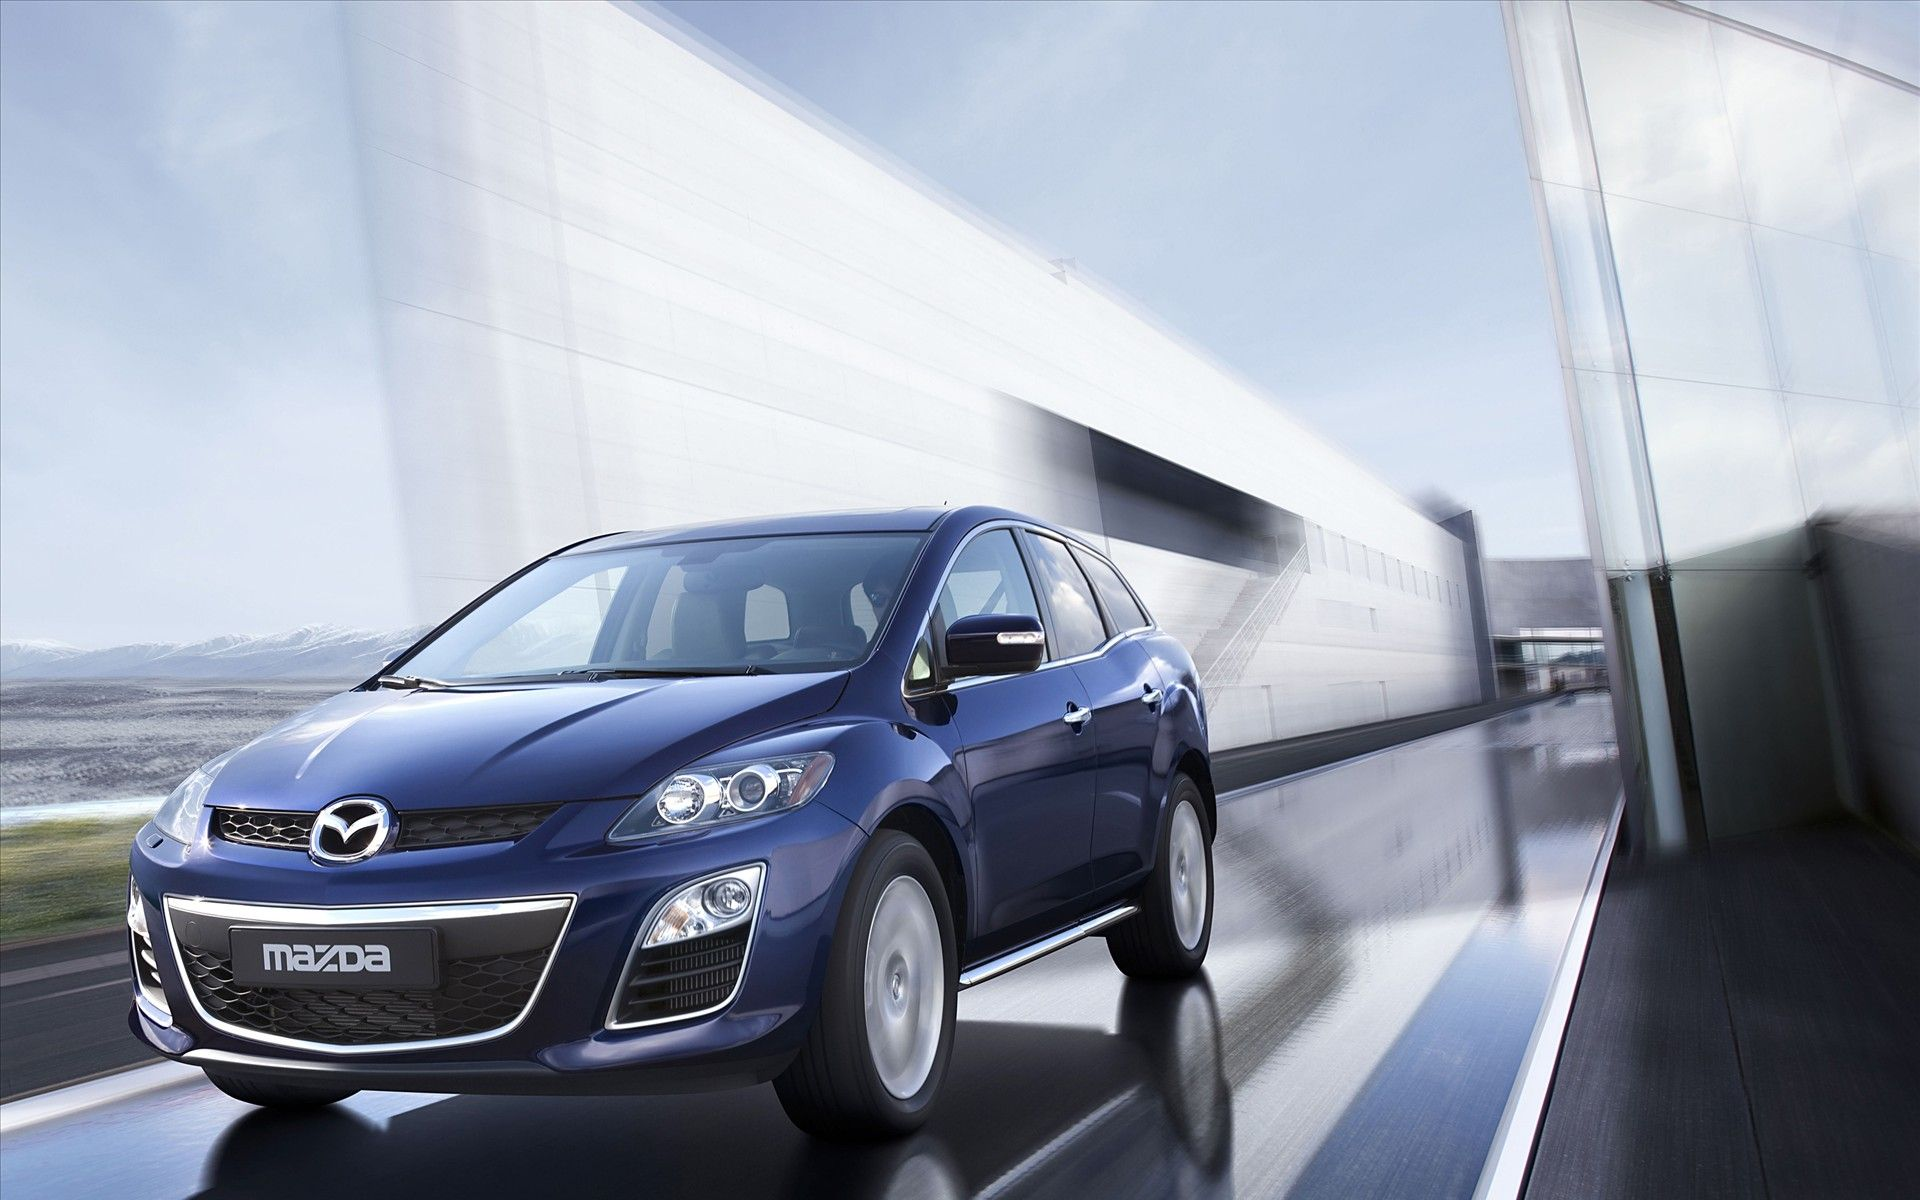 Mazda Cx7 Front View Moving Wallpaper 1920x1200